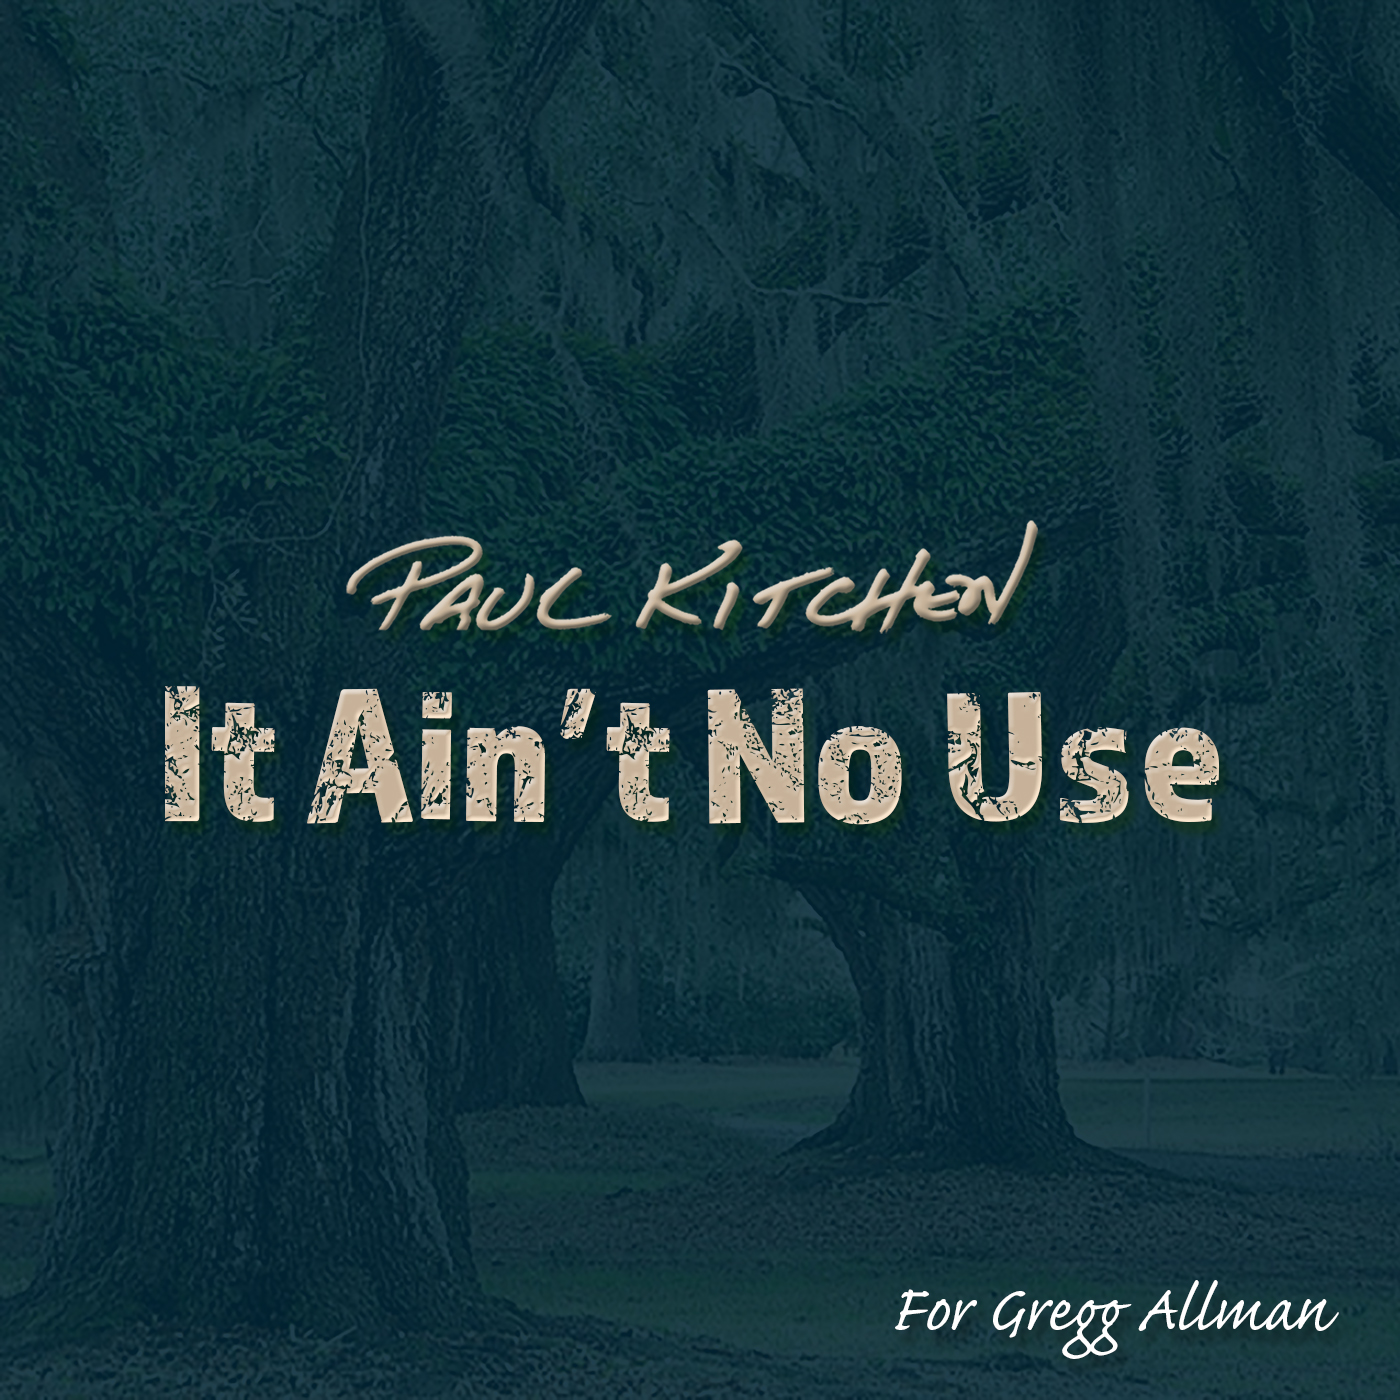 It Ain't No Use (Single)